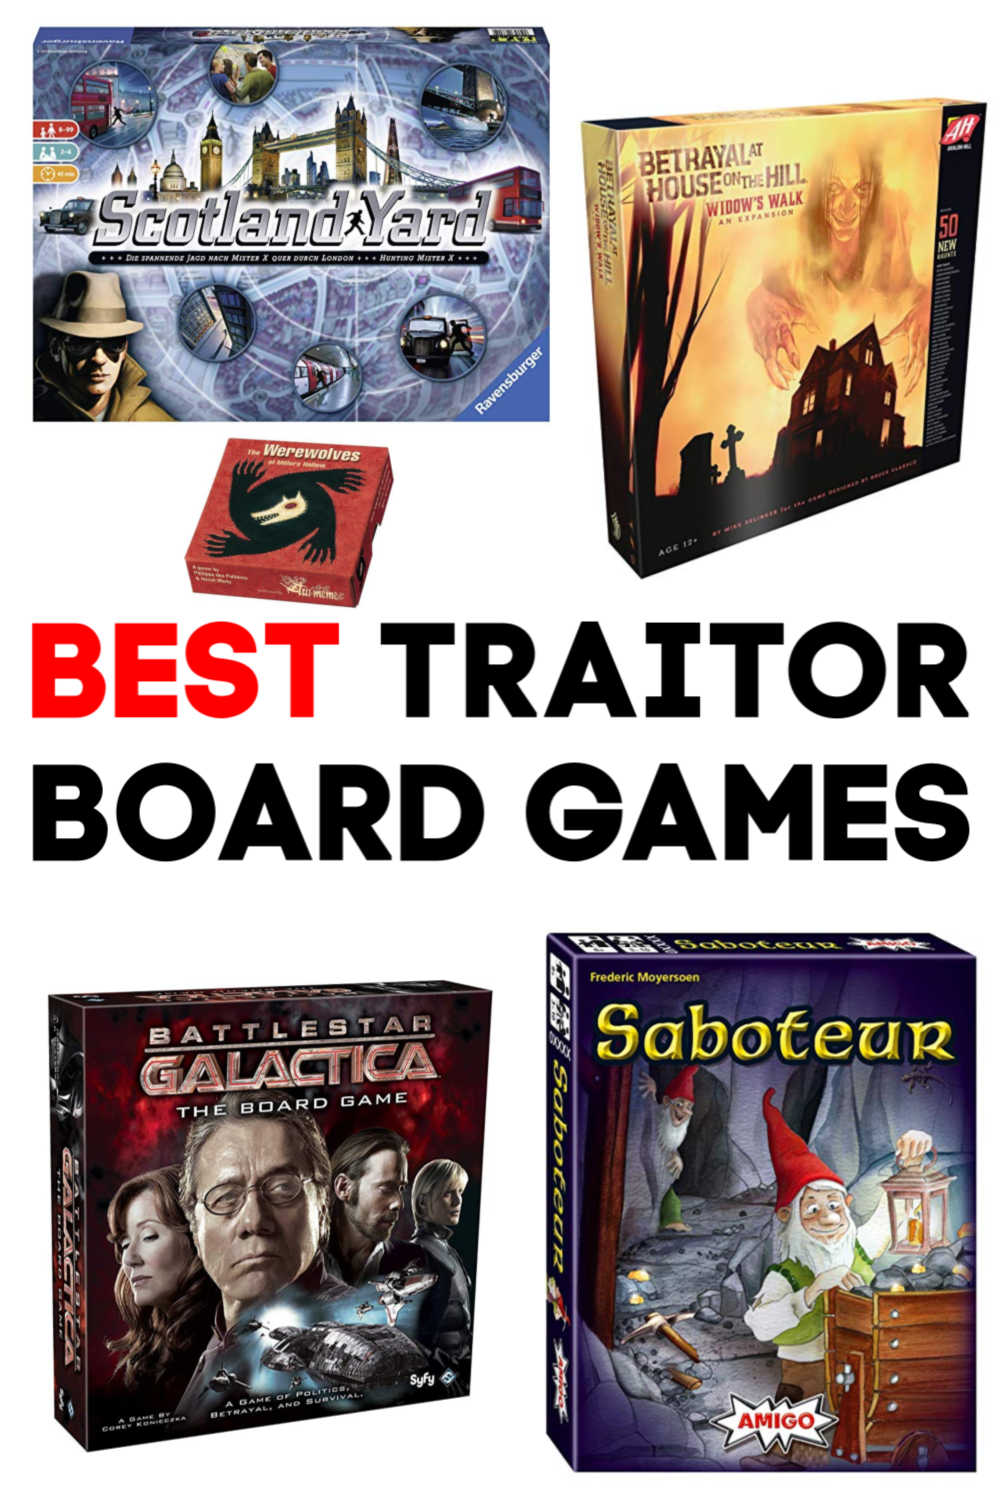 Best Traitor Board Games. Master the games with the uninformed majority #boardgames #traitor #spy #games